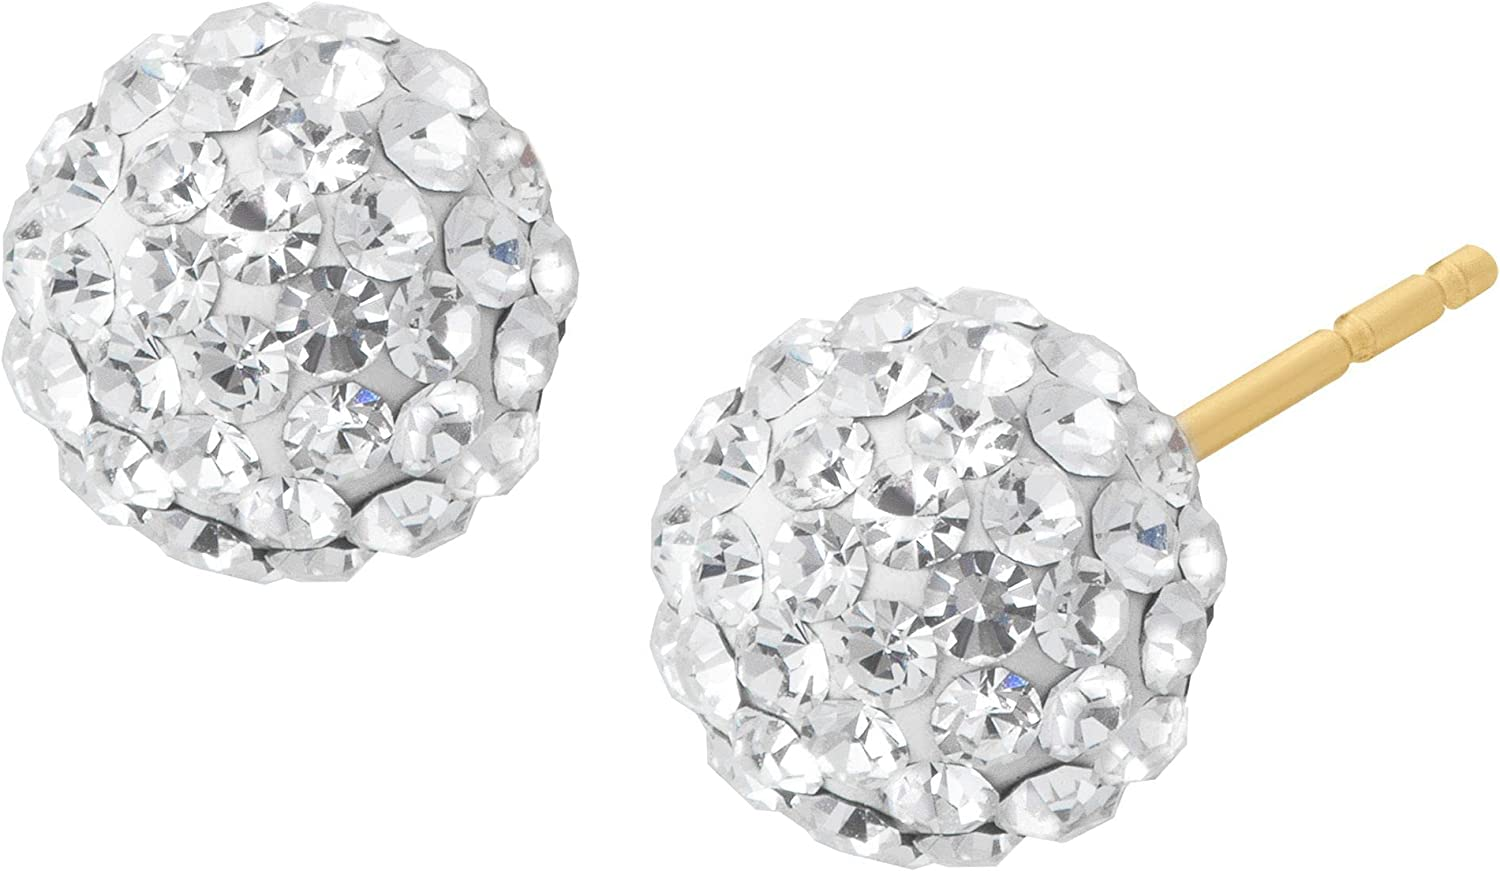 Crystaluxe Glitter Ball Stud Earrings with Crystals in 14K Gold